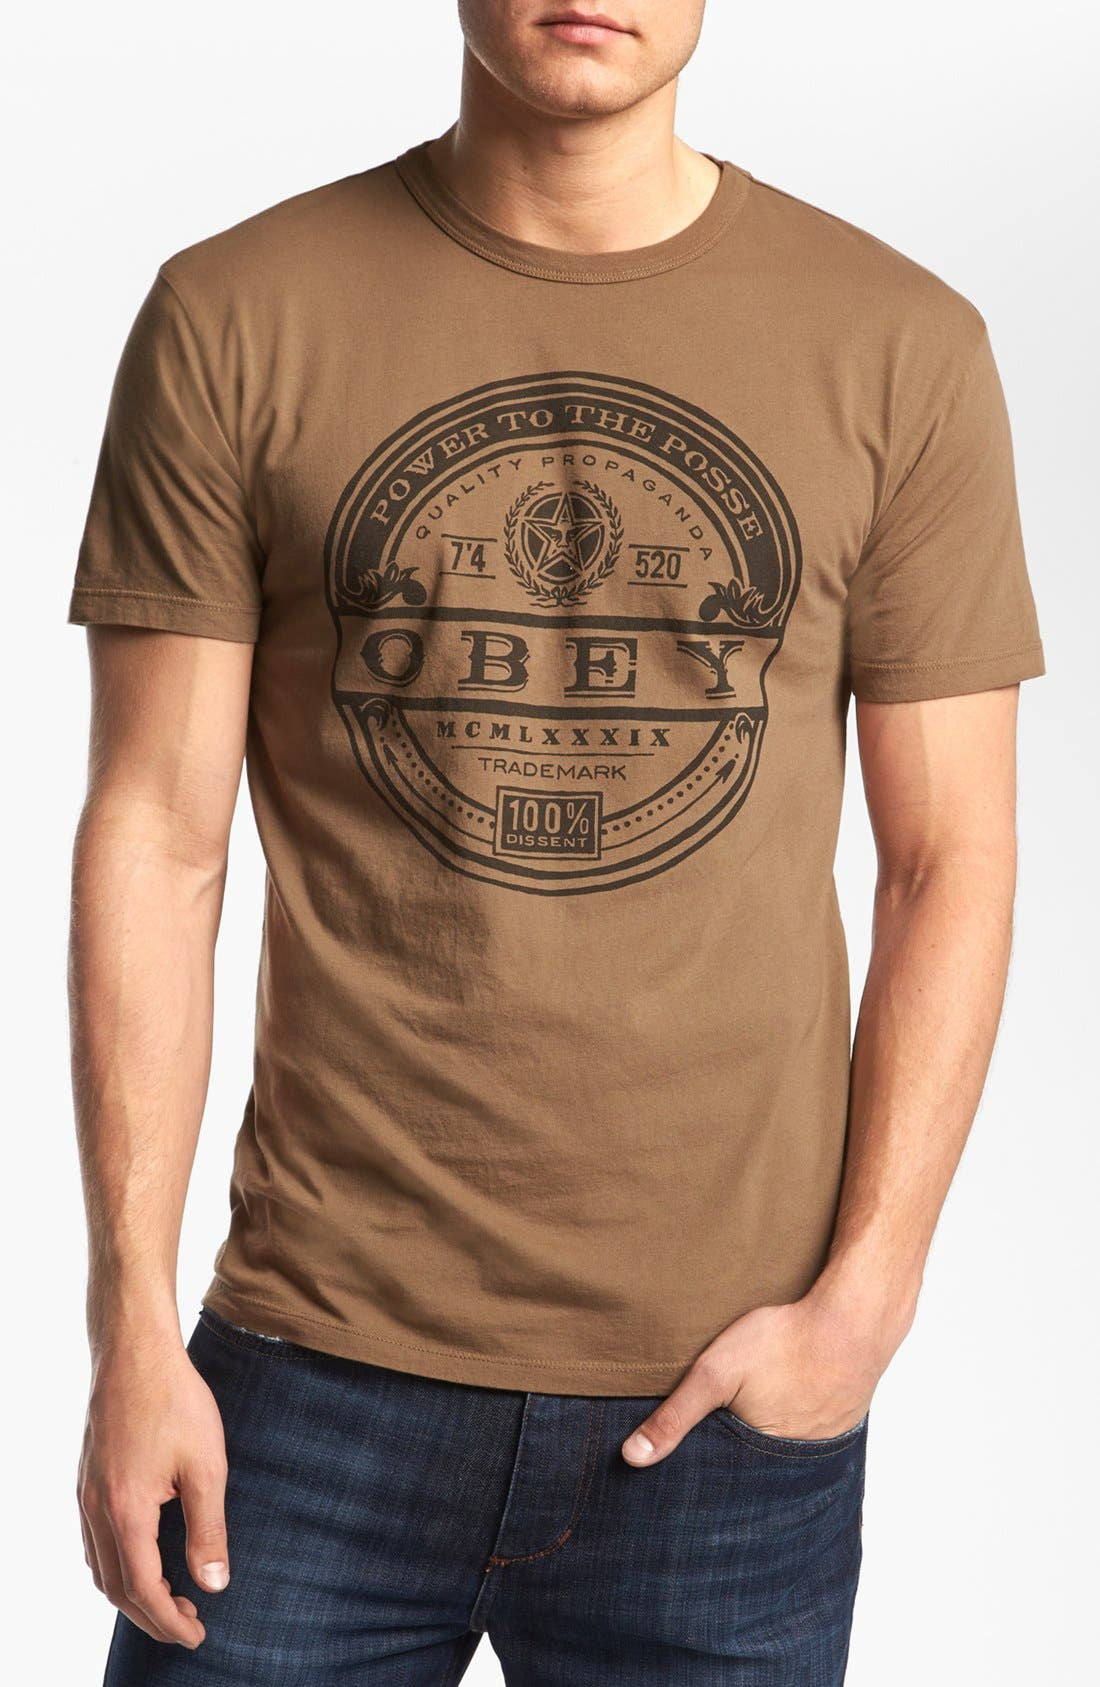 Alternate Image 1 Selected - Obey 'Power Label' T-Shirt